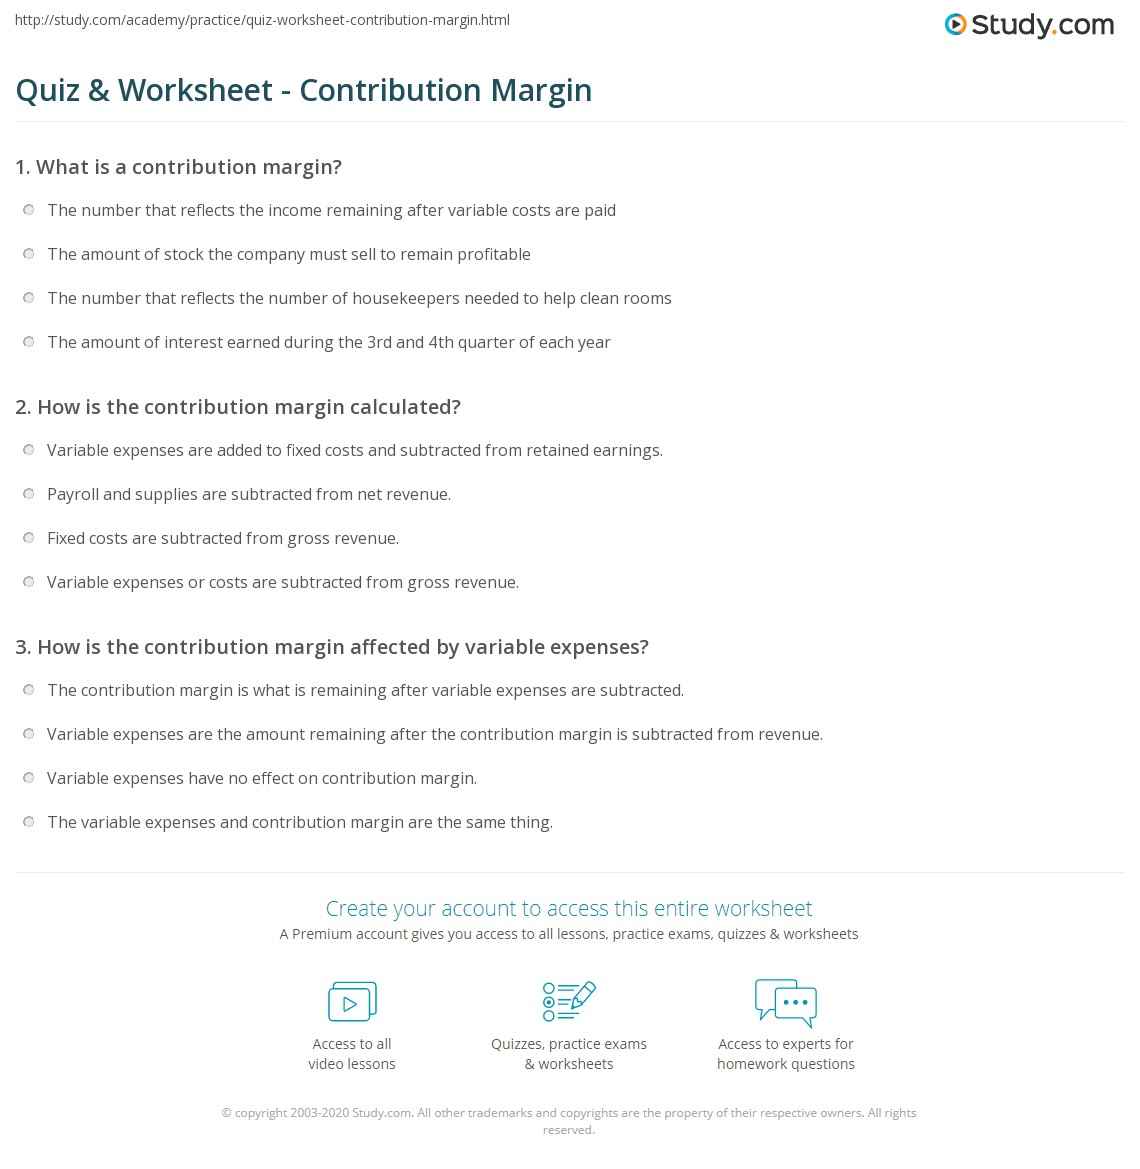 quiz worksheet contribution margin